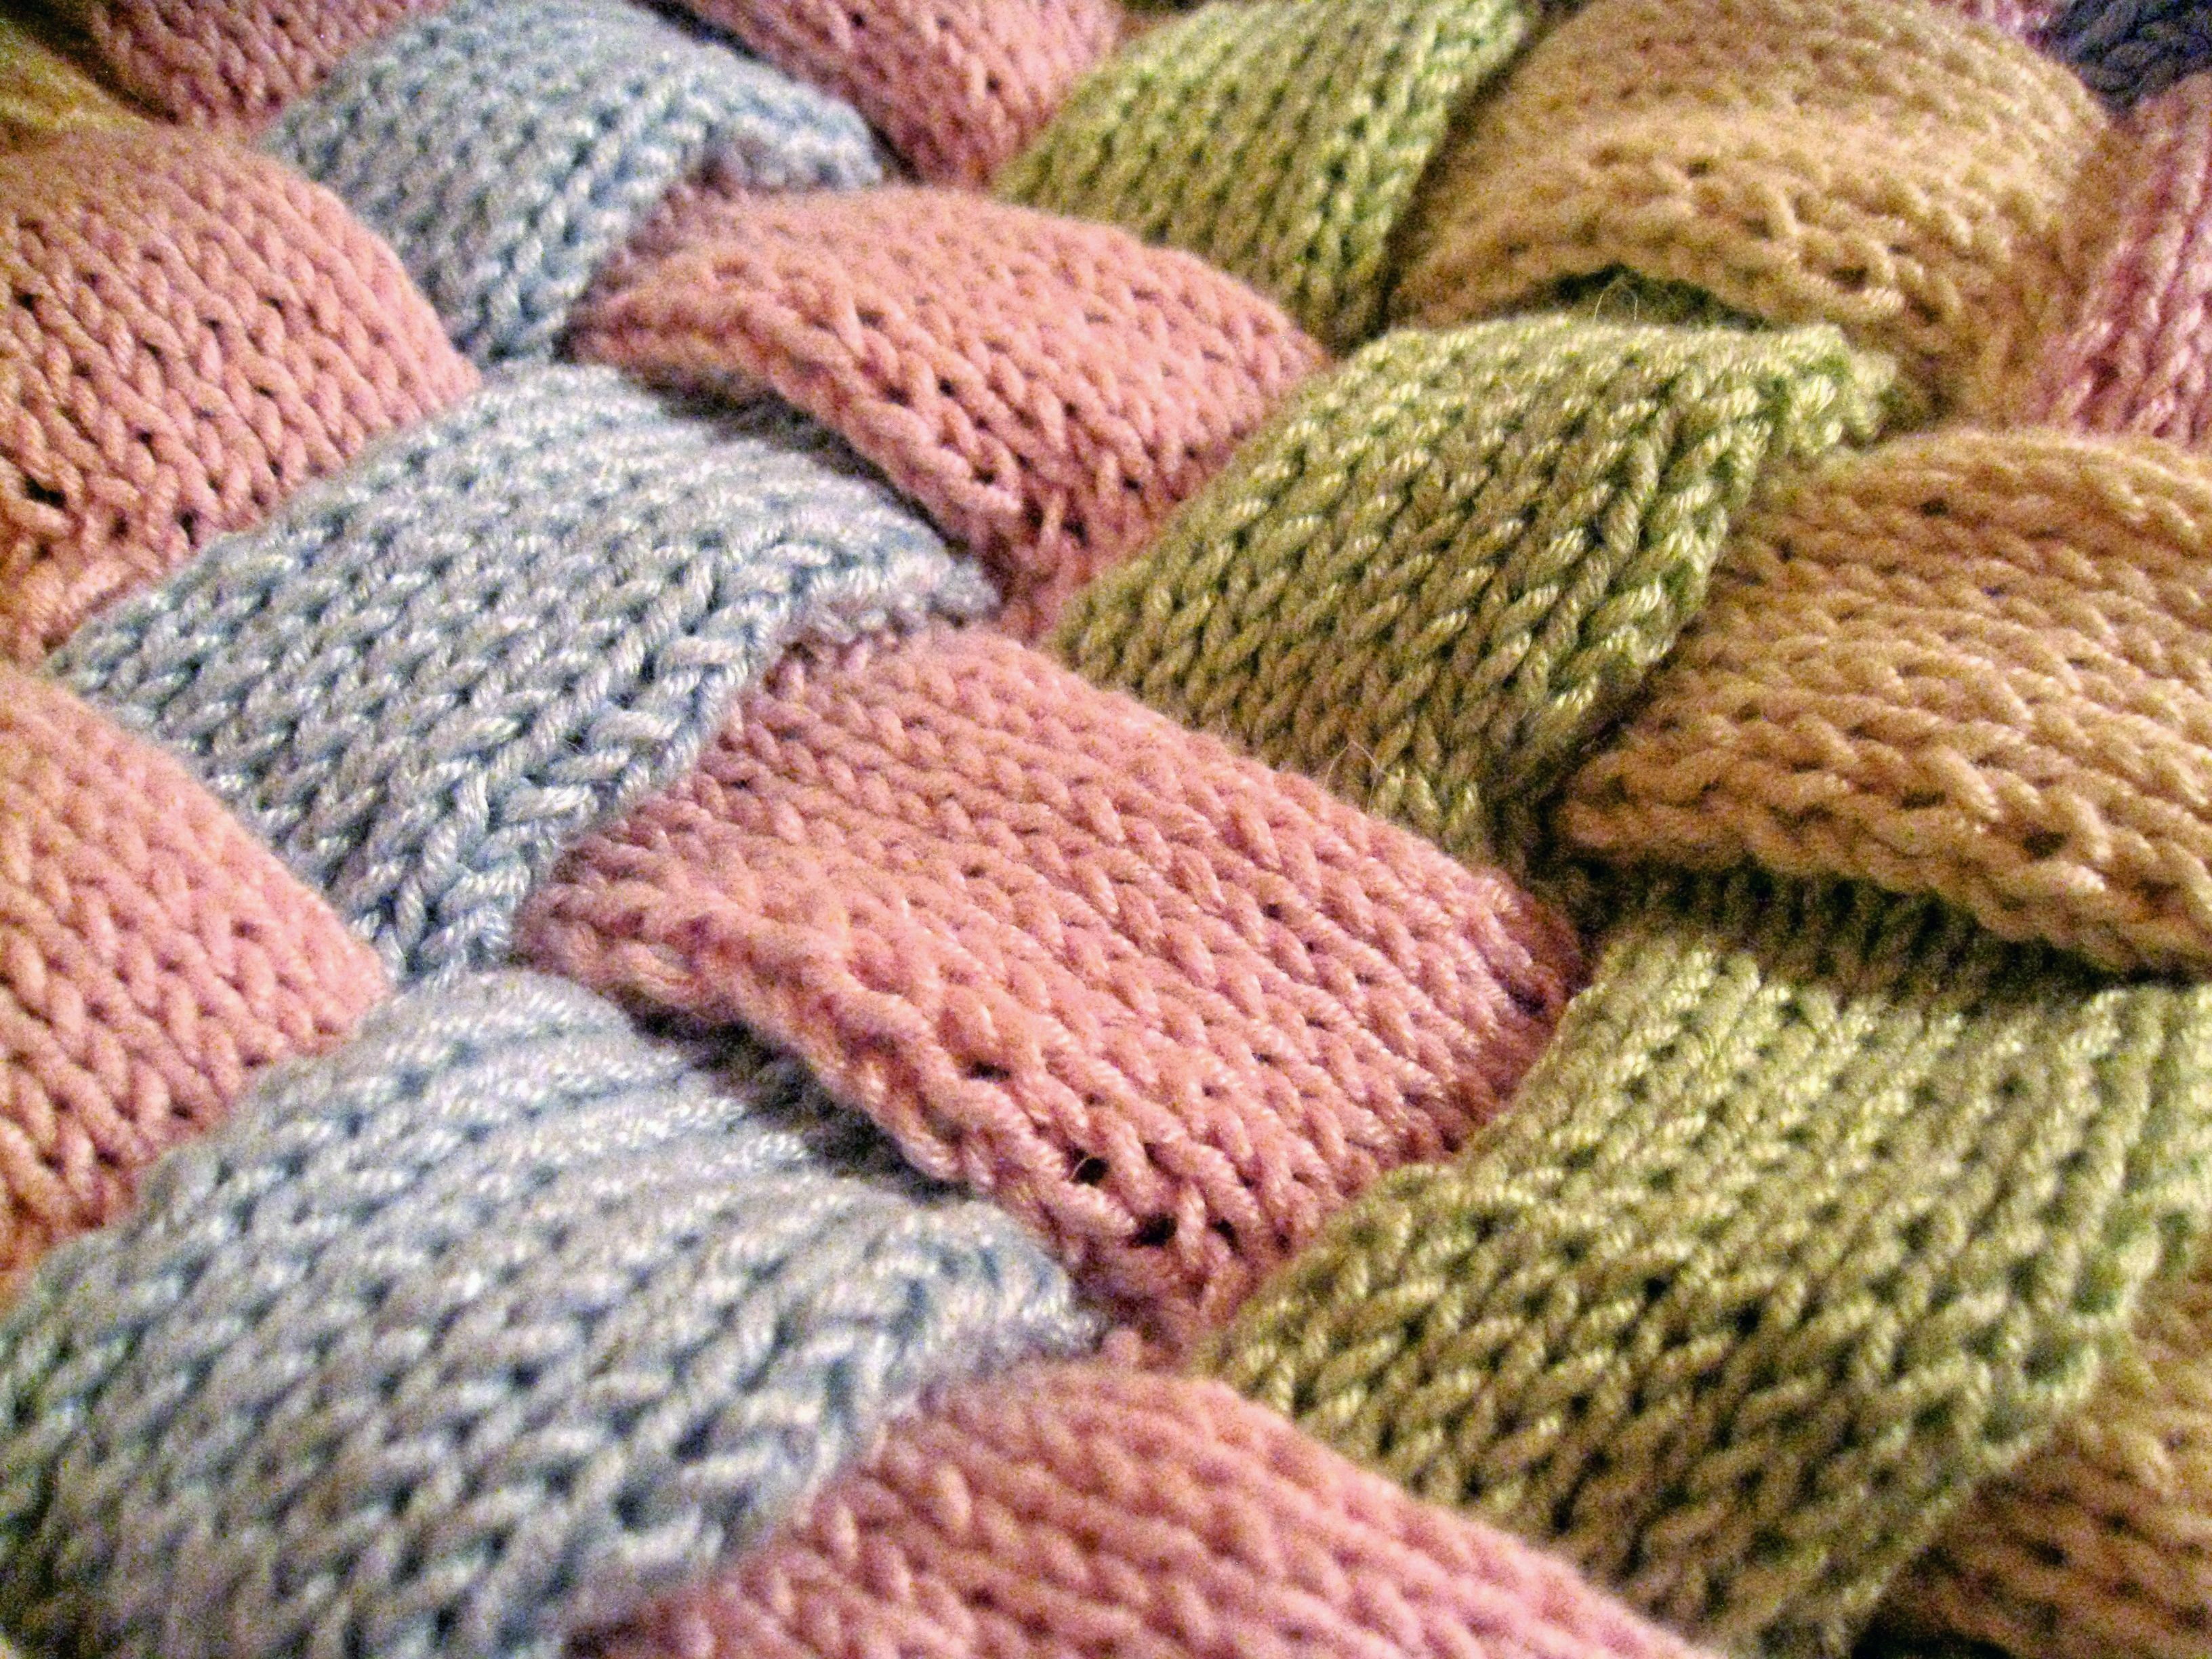 Knitting Quilt Stitch : Weaved knitted baby blanket lots of little scarves